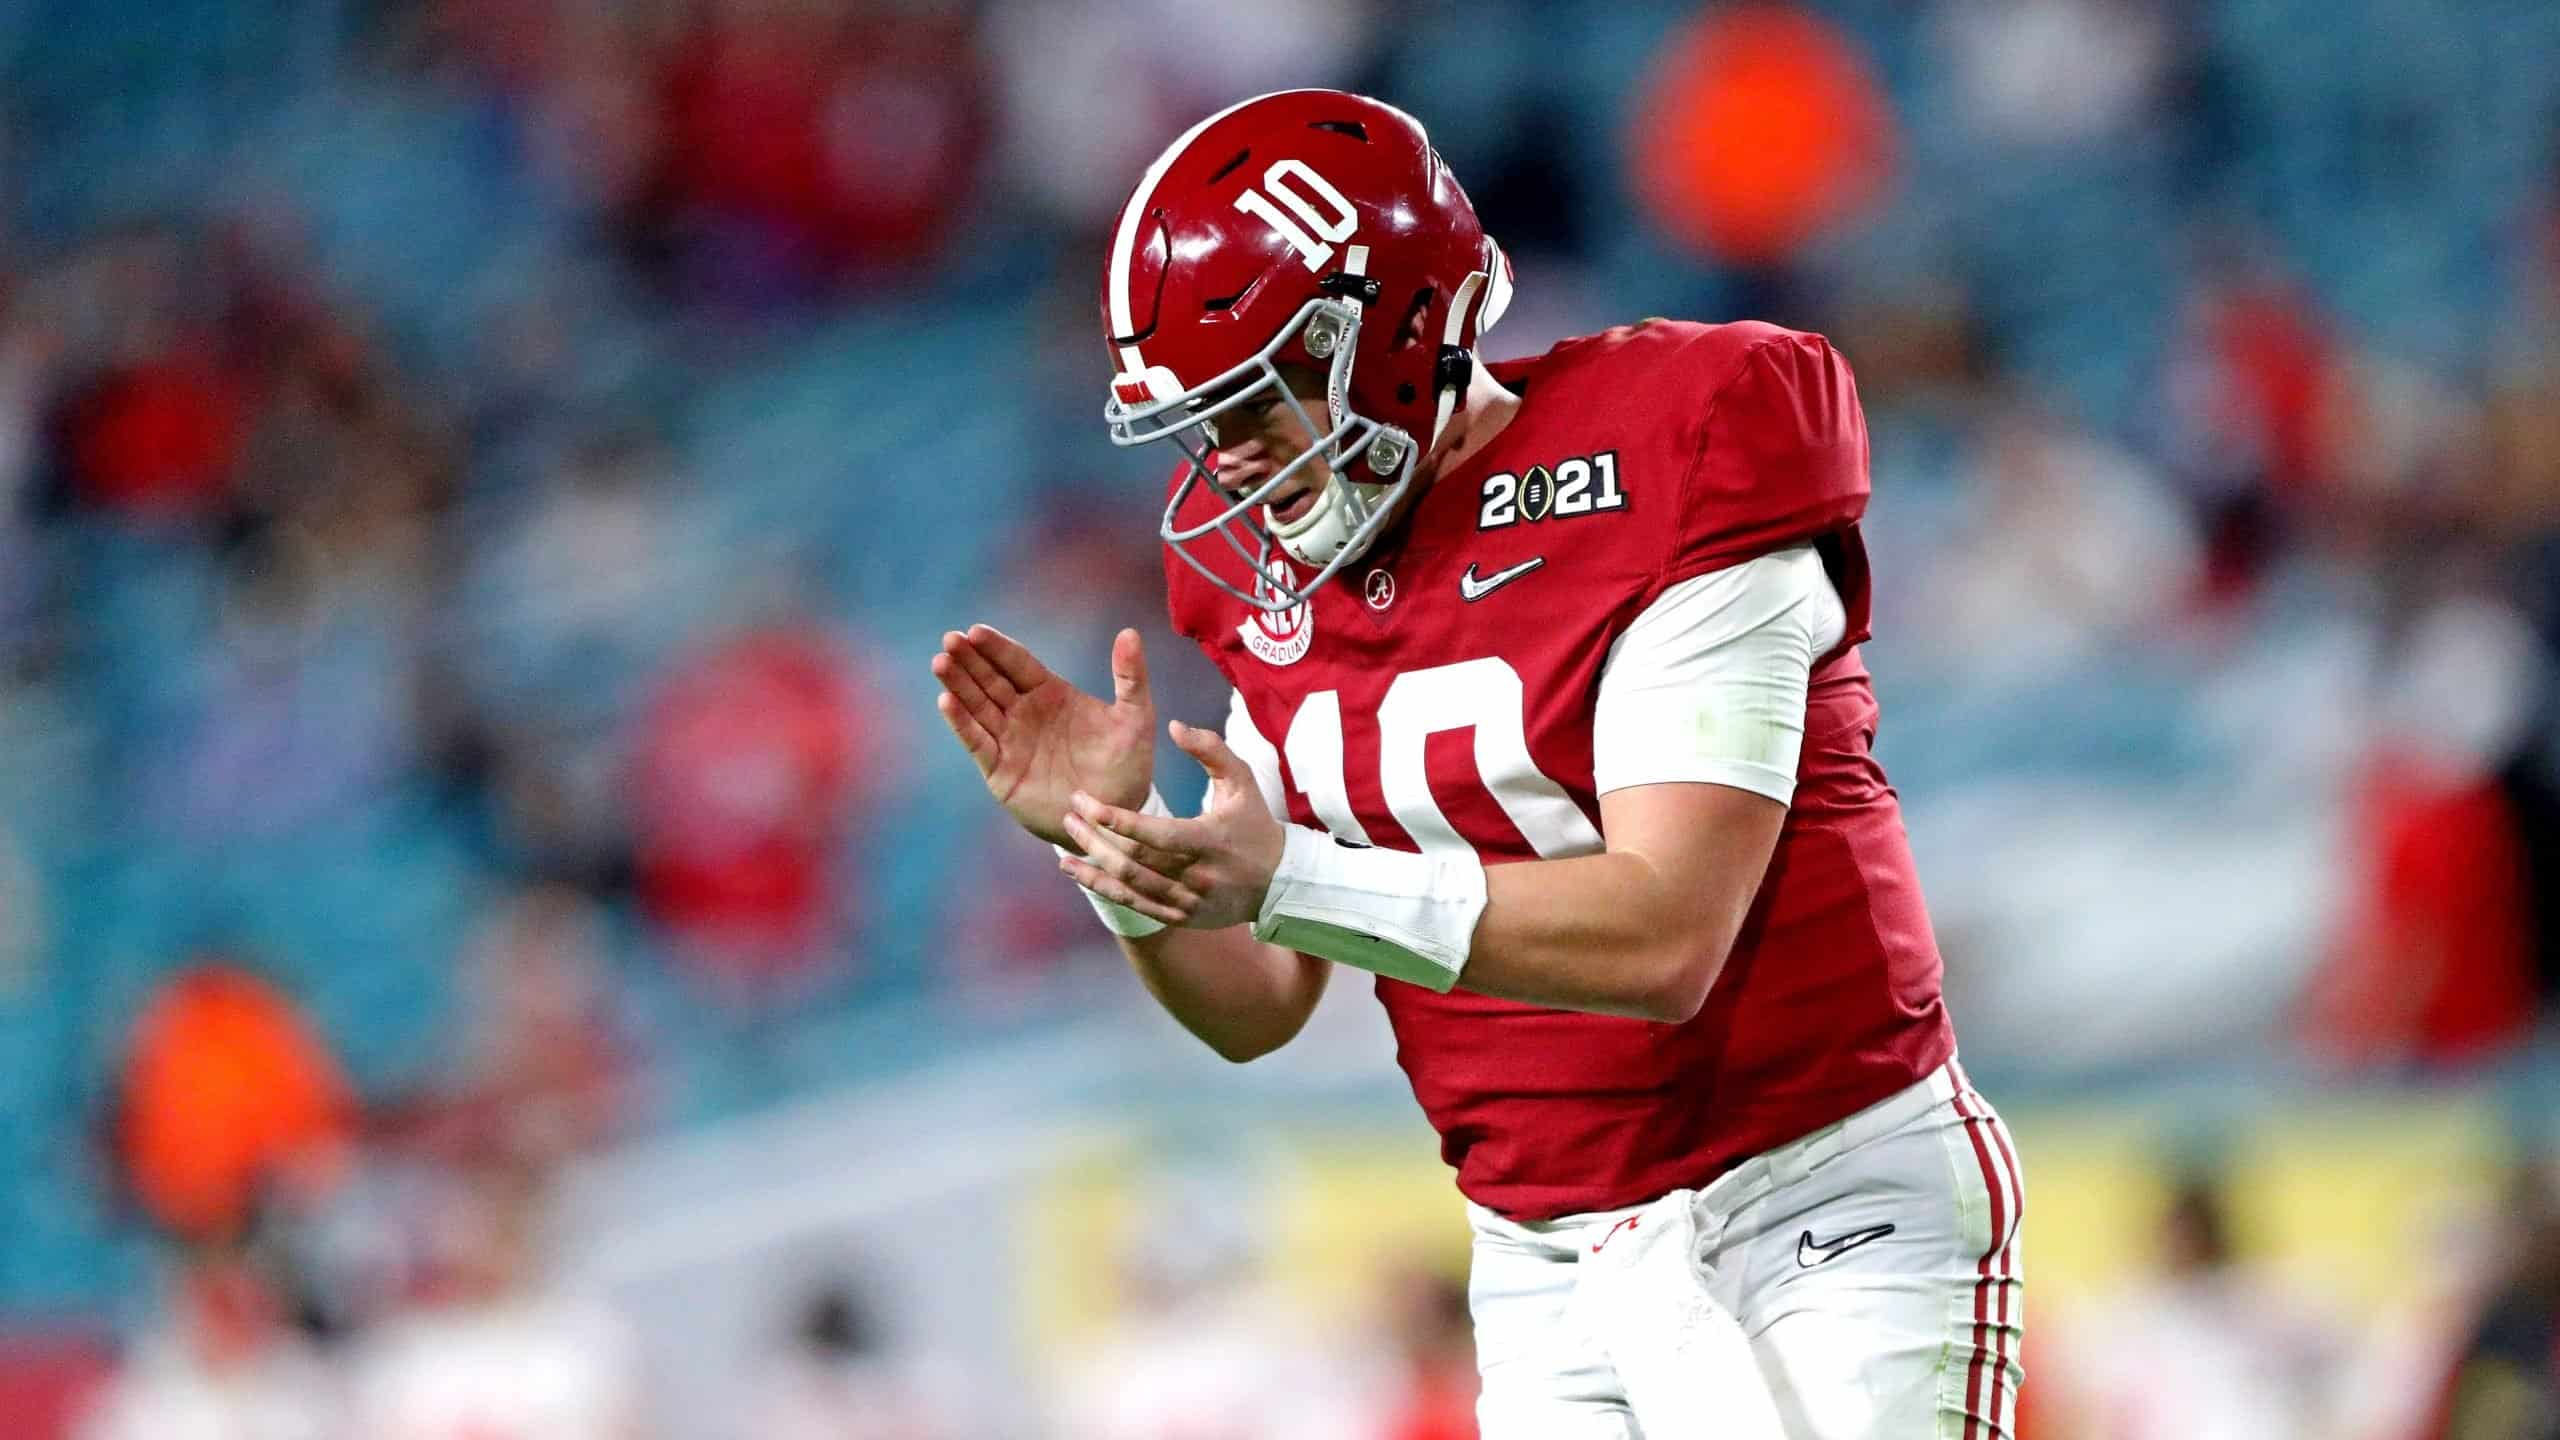 NFL Rumors & Draft News: 49ers QB target, Chase or Sewell to Bengals, and more